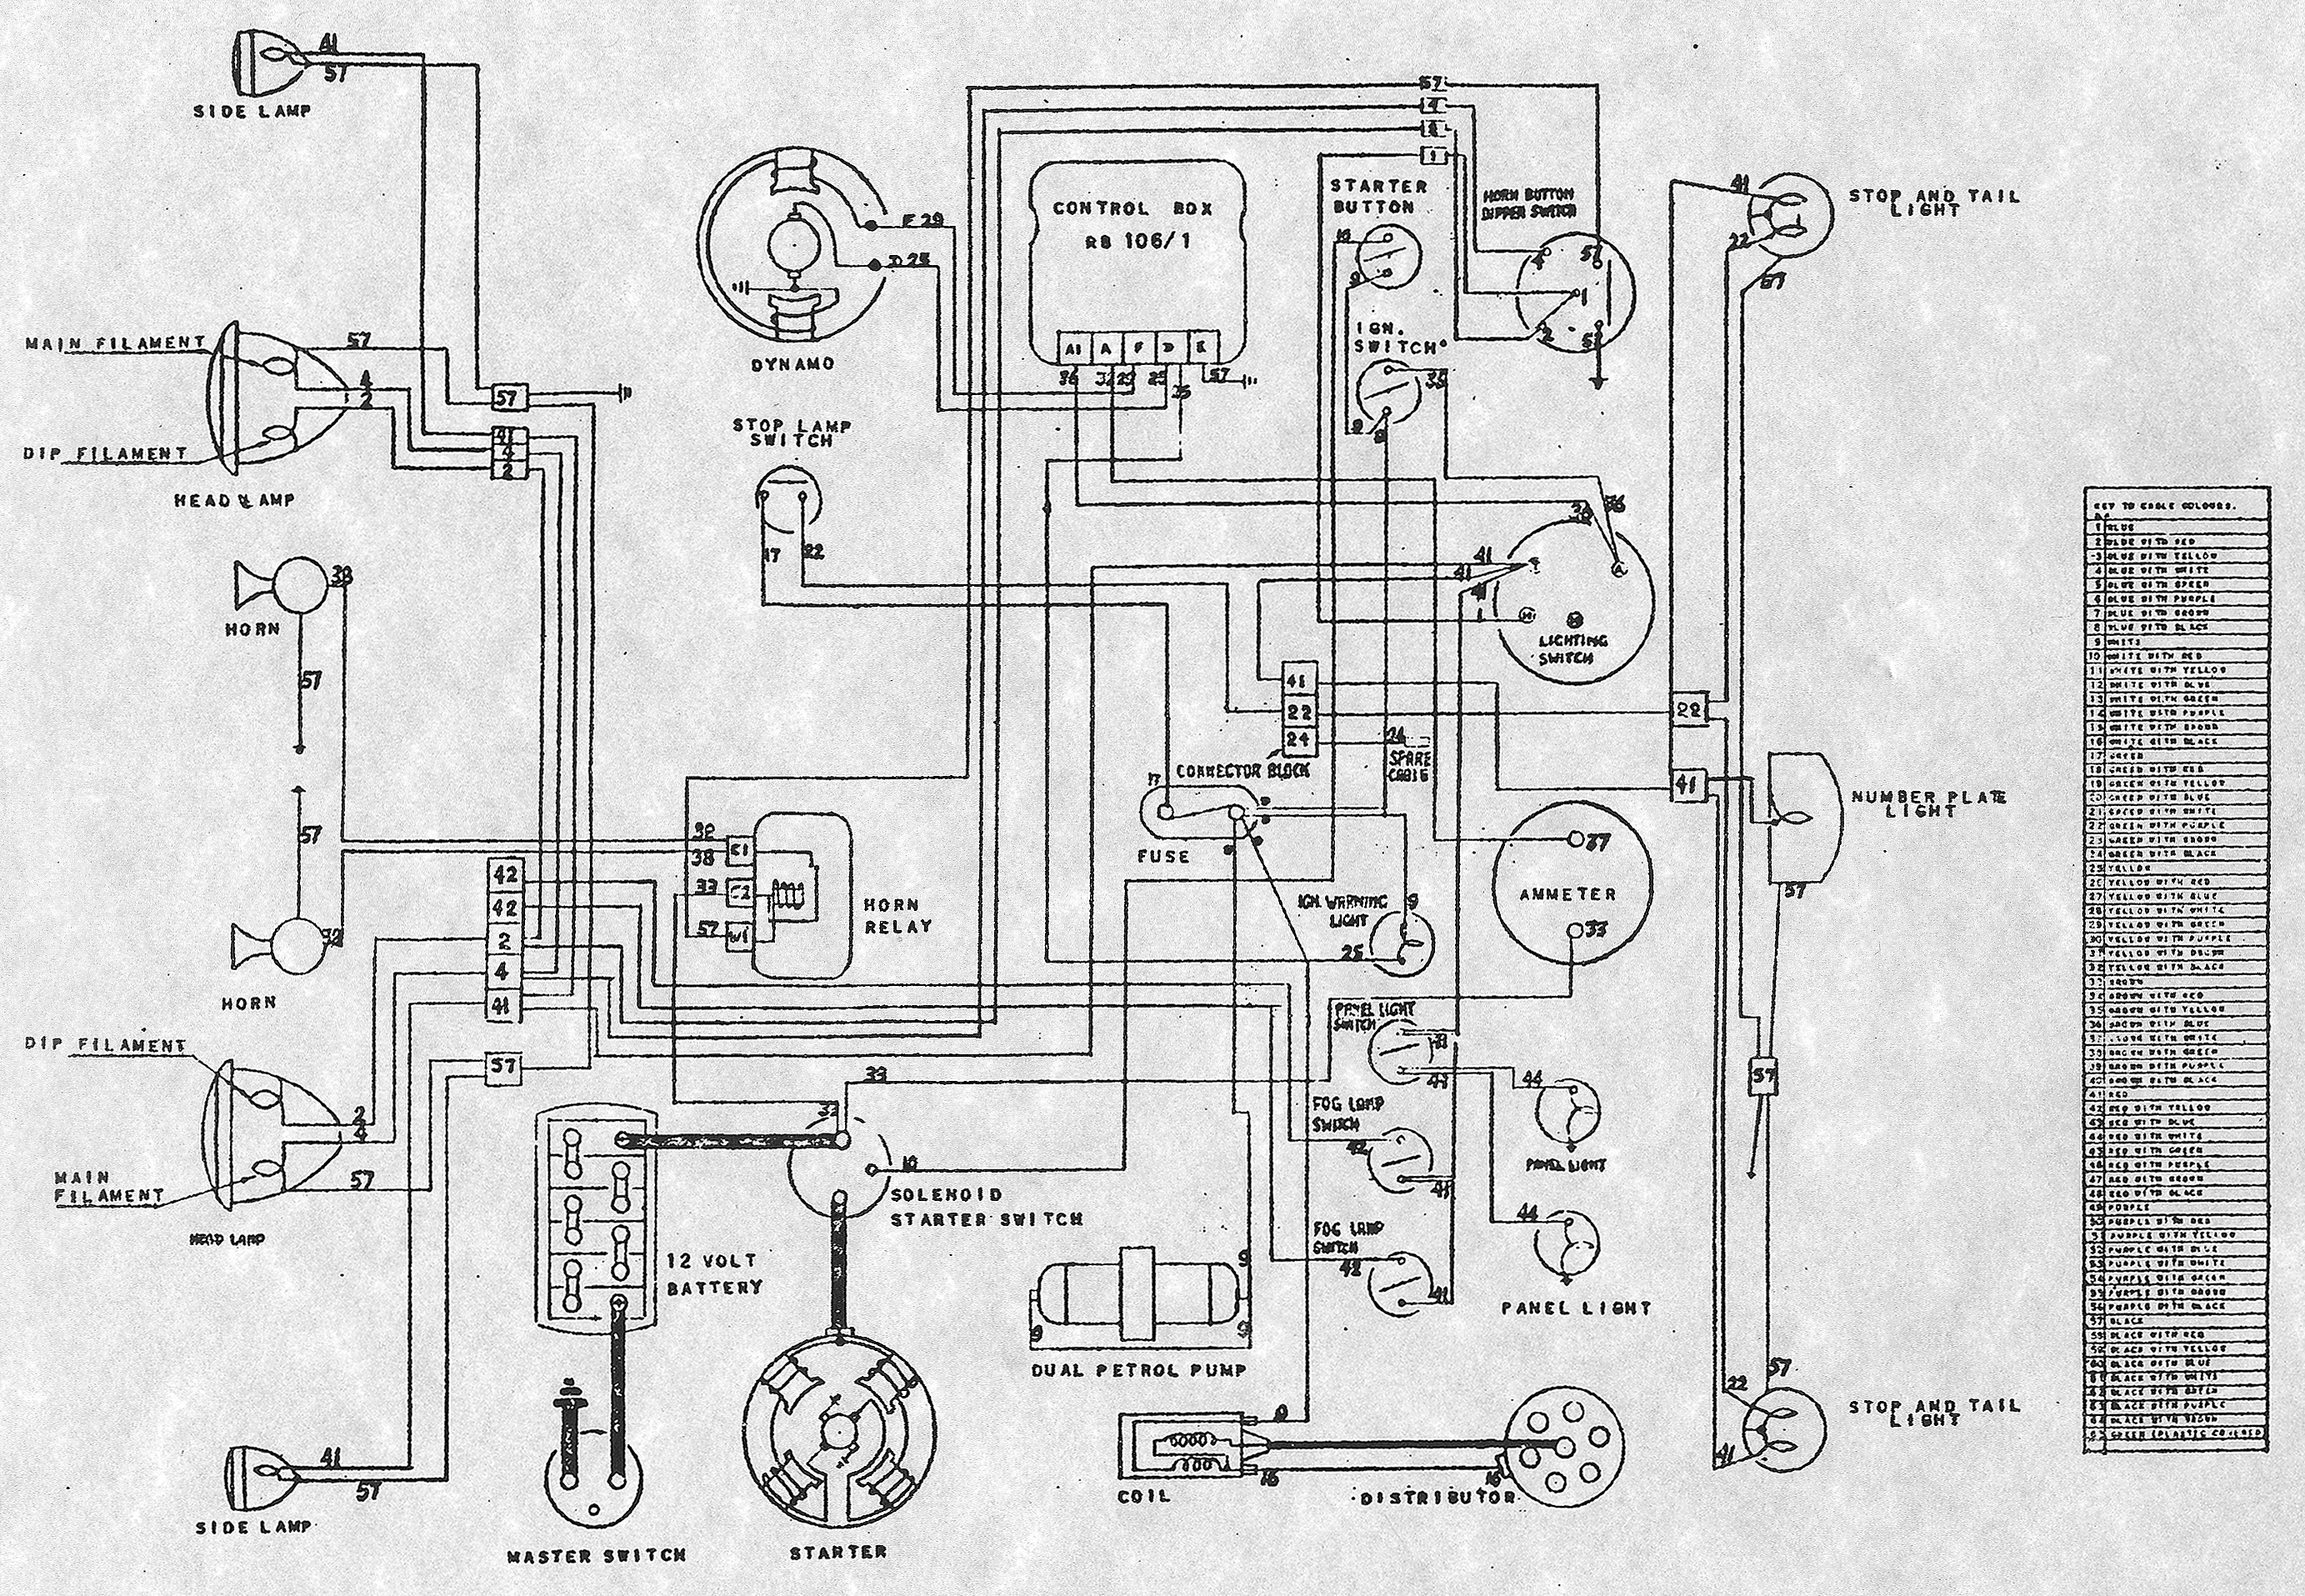 DB3S wiring diagram